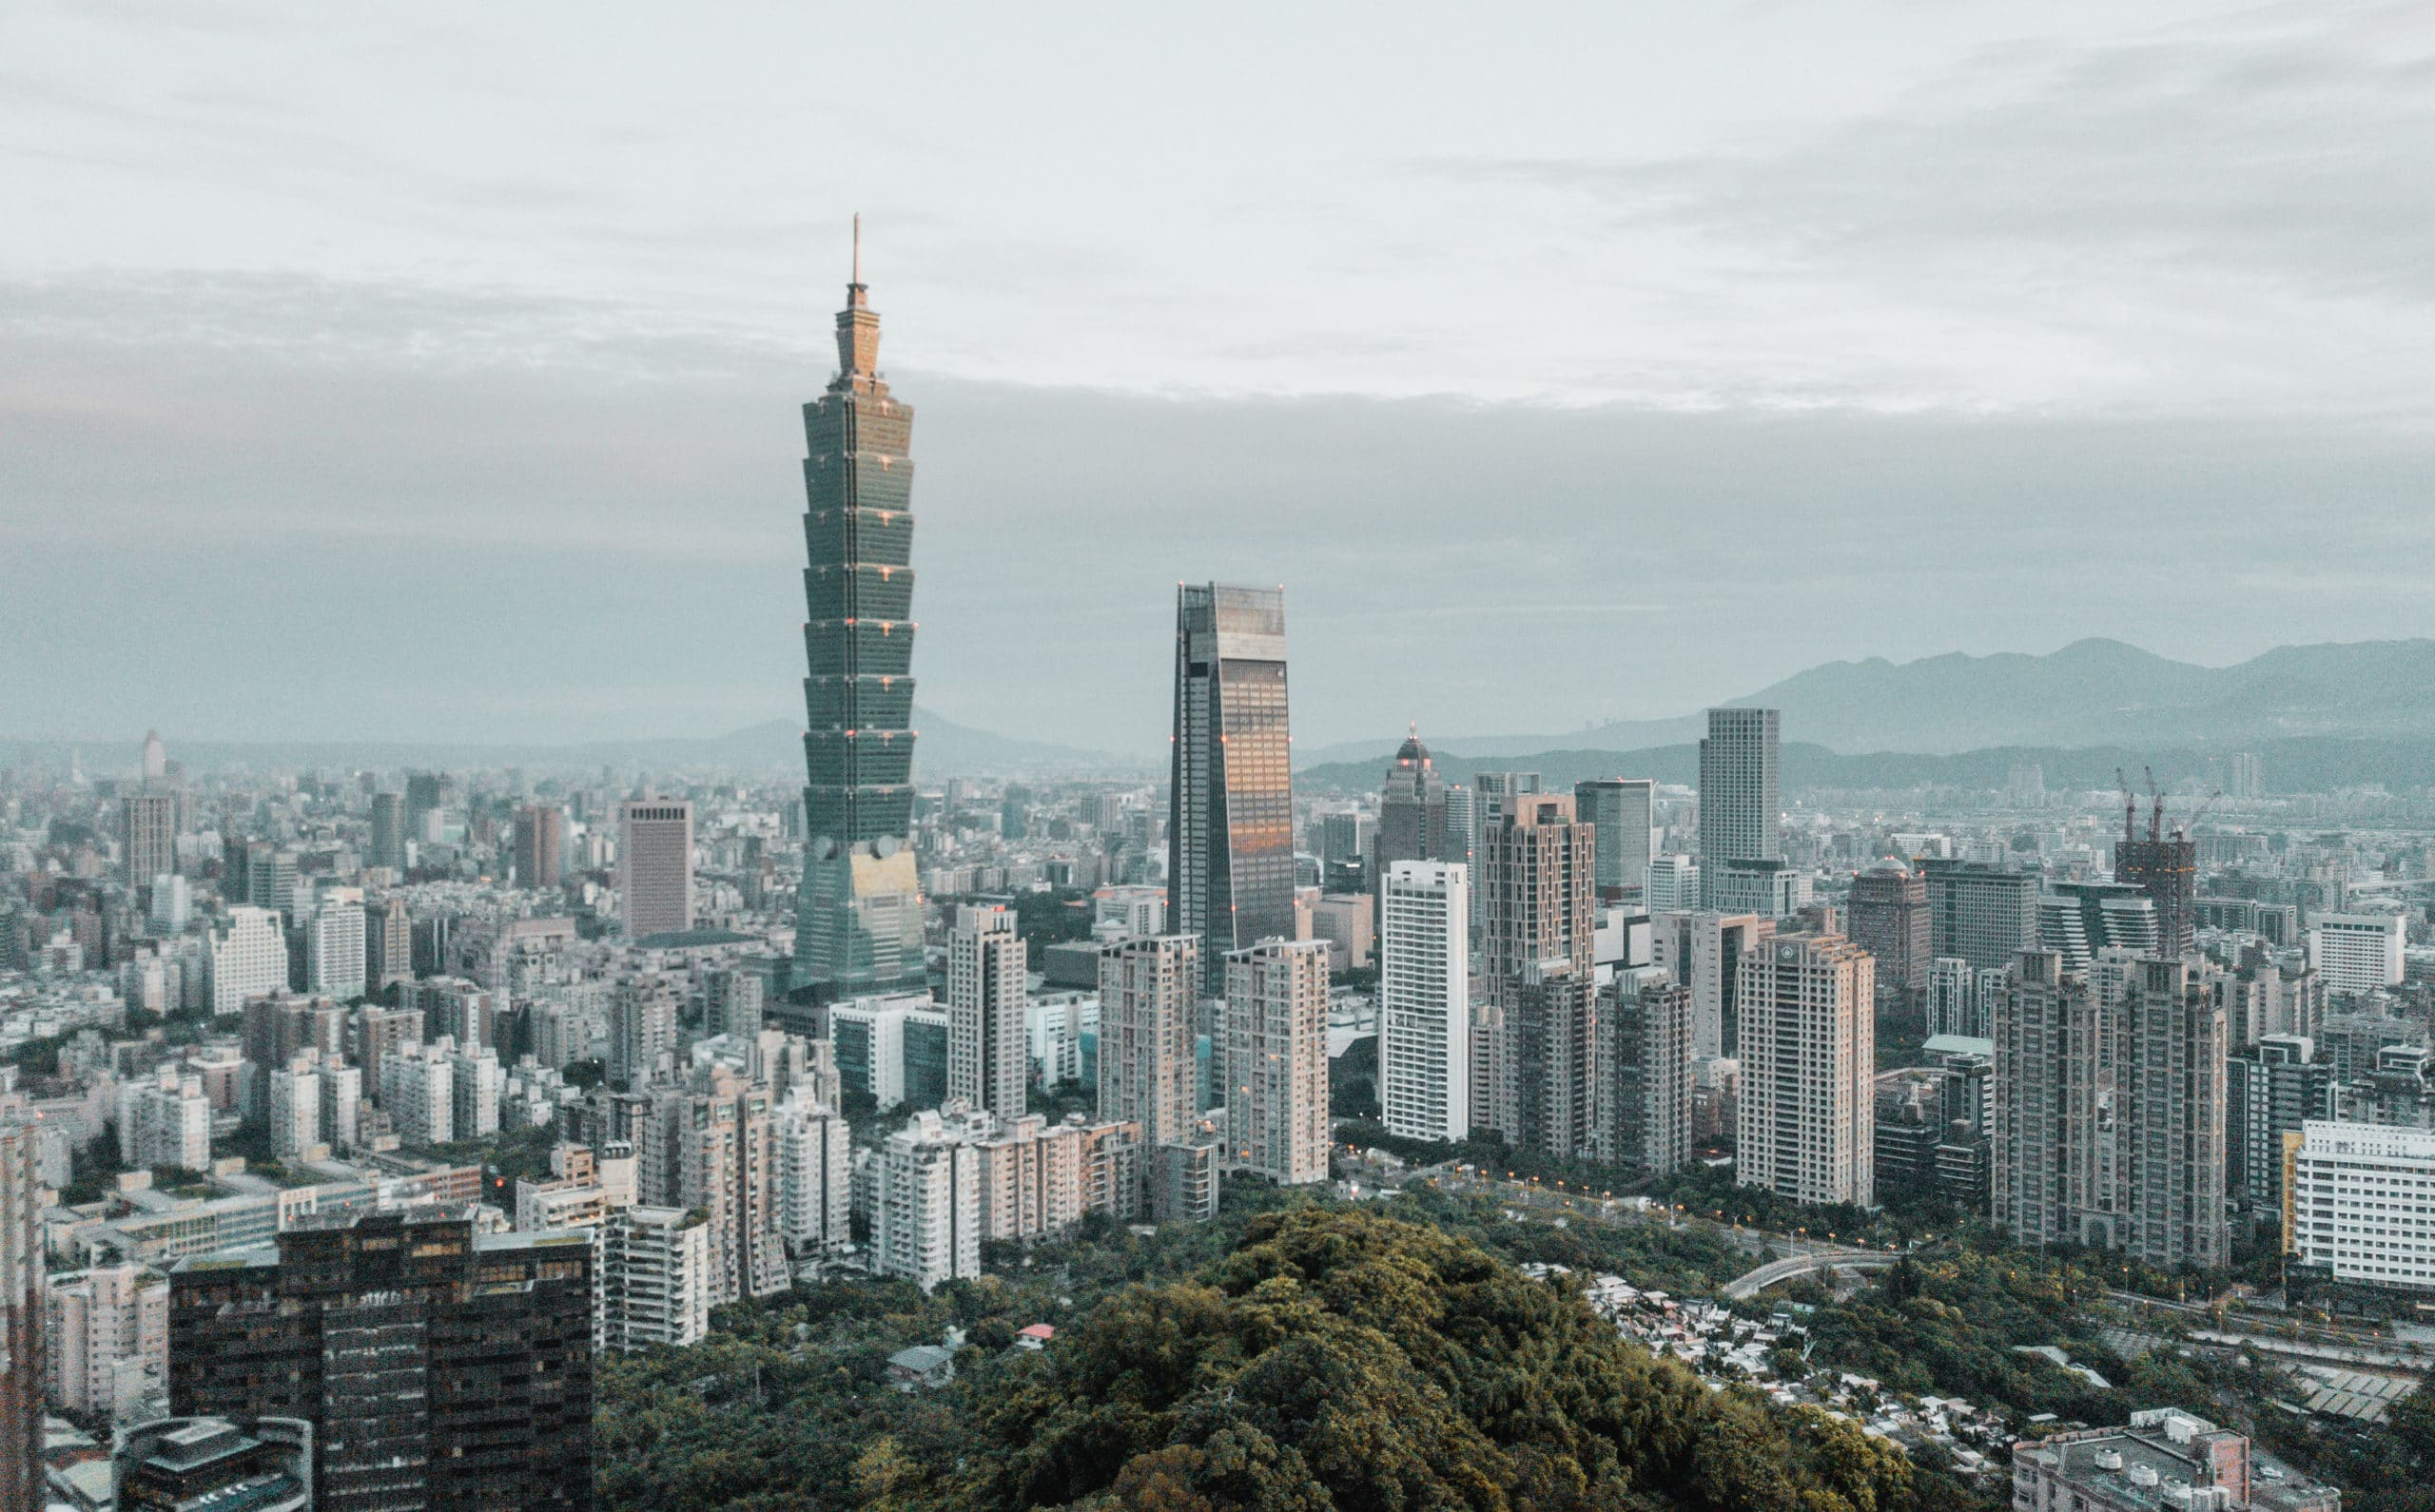 Exterior aerial view of Taipei, Taiwan with skyscrapers and surrounding city buildings.